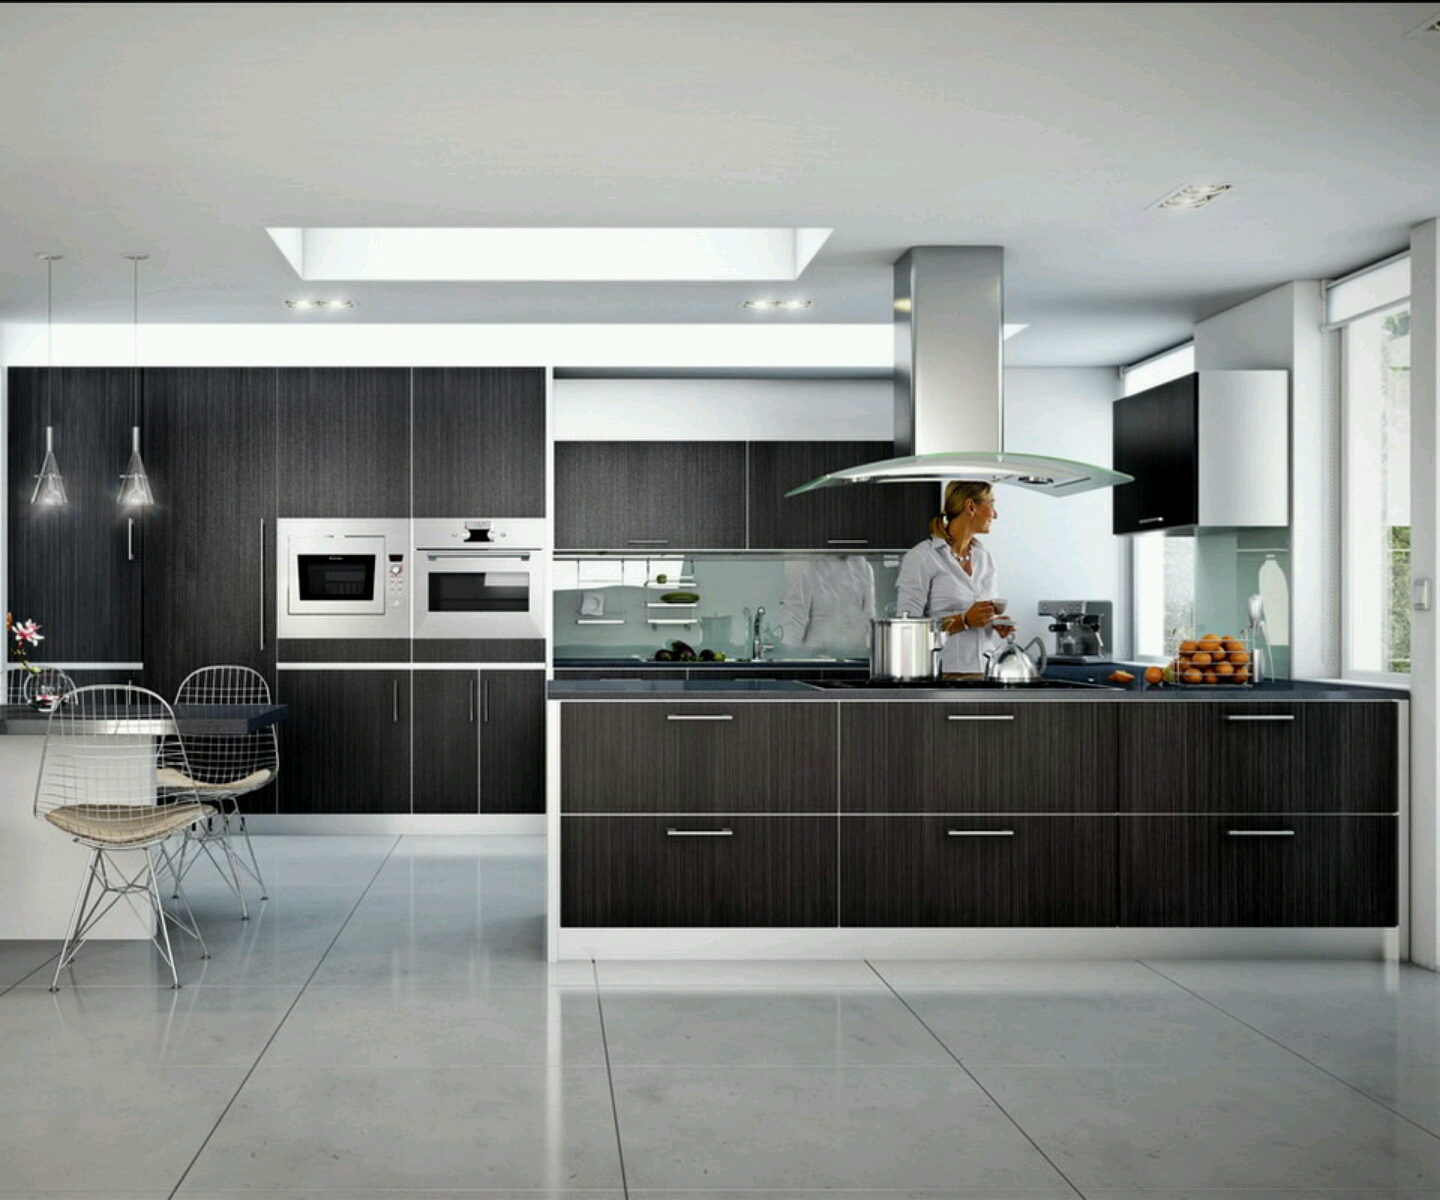 Delightful Modern Homes Ultra Modern Kitchen Designs Ideas.